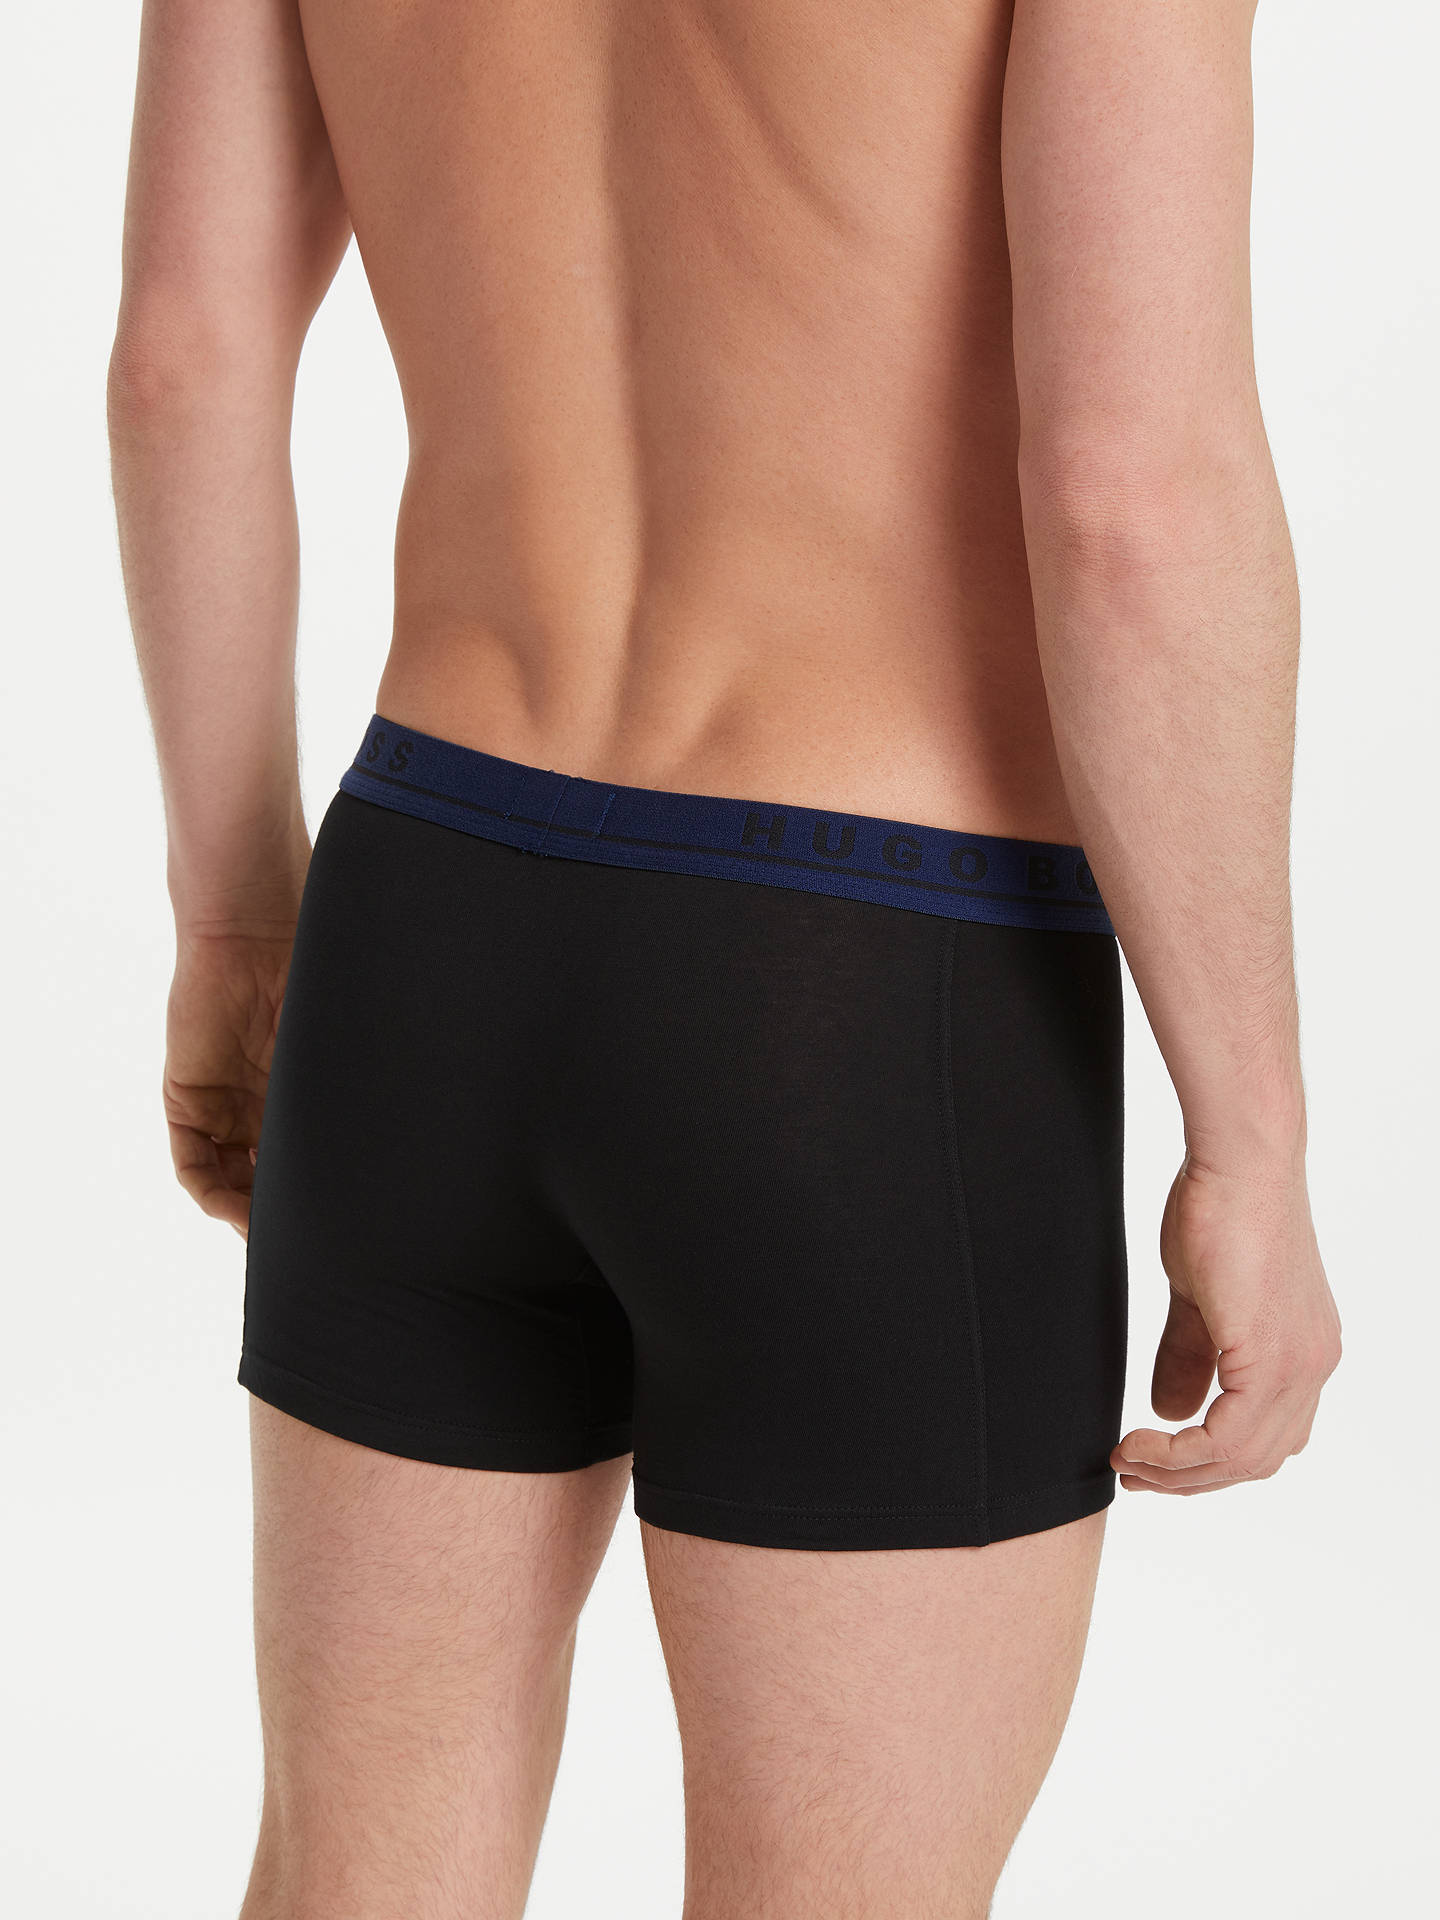 Buy BOSS Plain Contrast Waistband Trunks, Pack of 3, Yellow/Grey/Navy, S Online at johnlewis.com